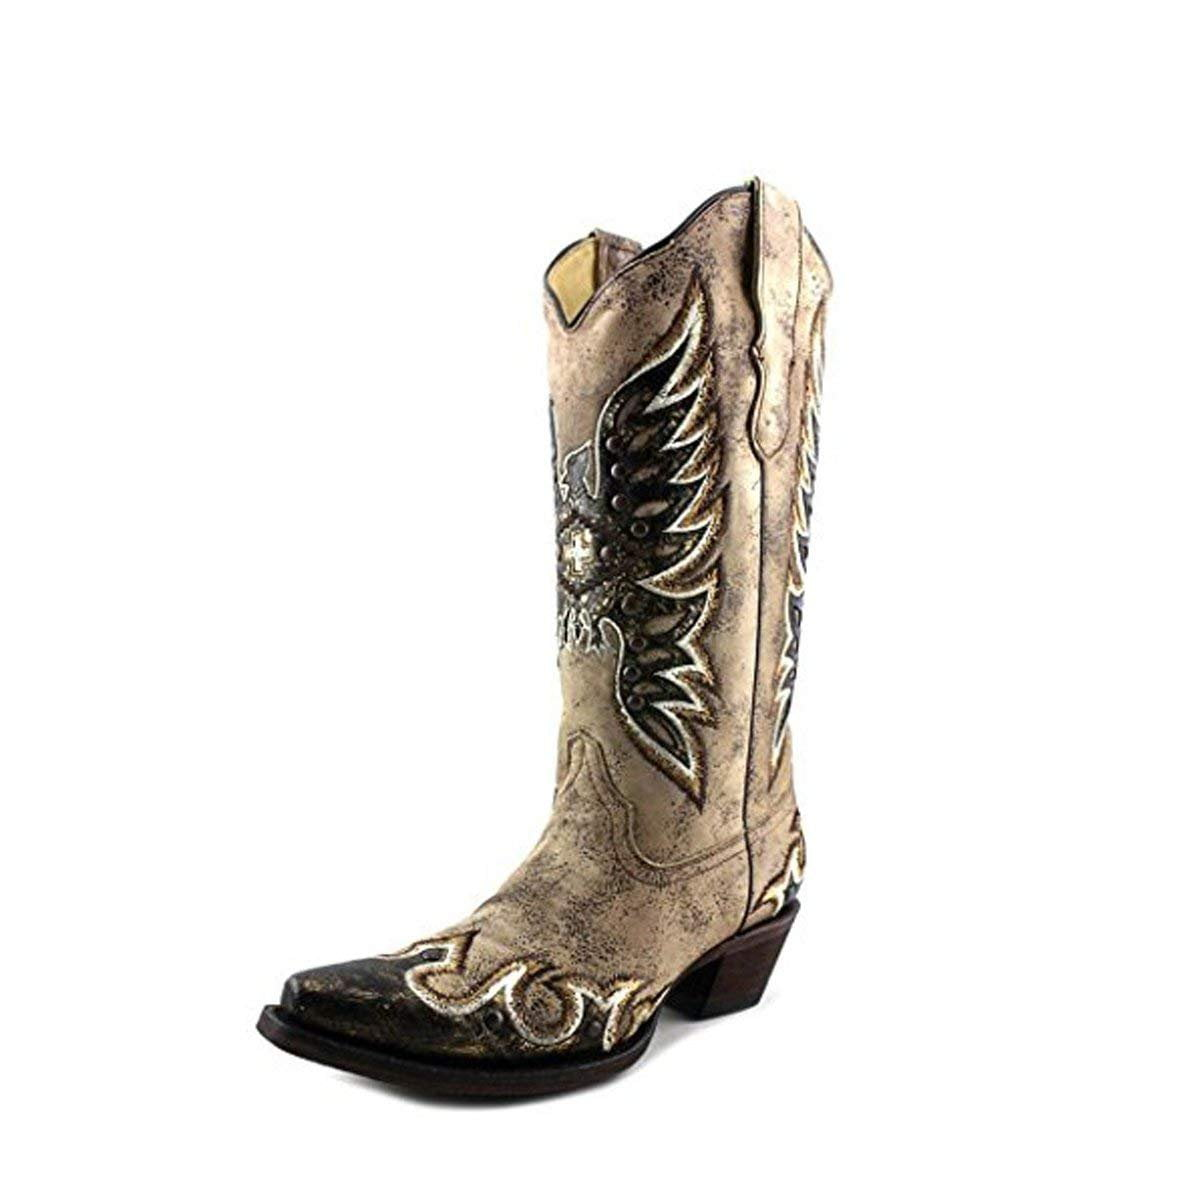 CORRAL Women's Distressed Brown Studded Metallic Eagle Snip Toe Boots E1040 (7 B(M) US)